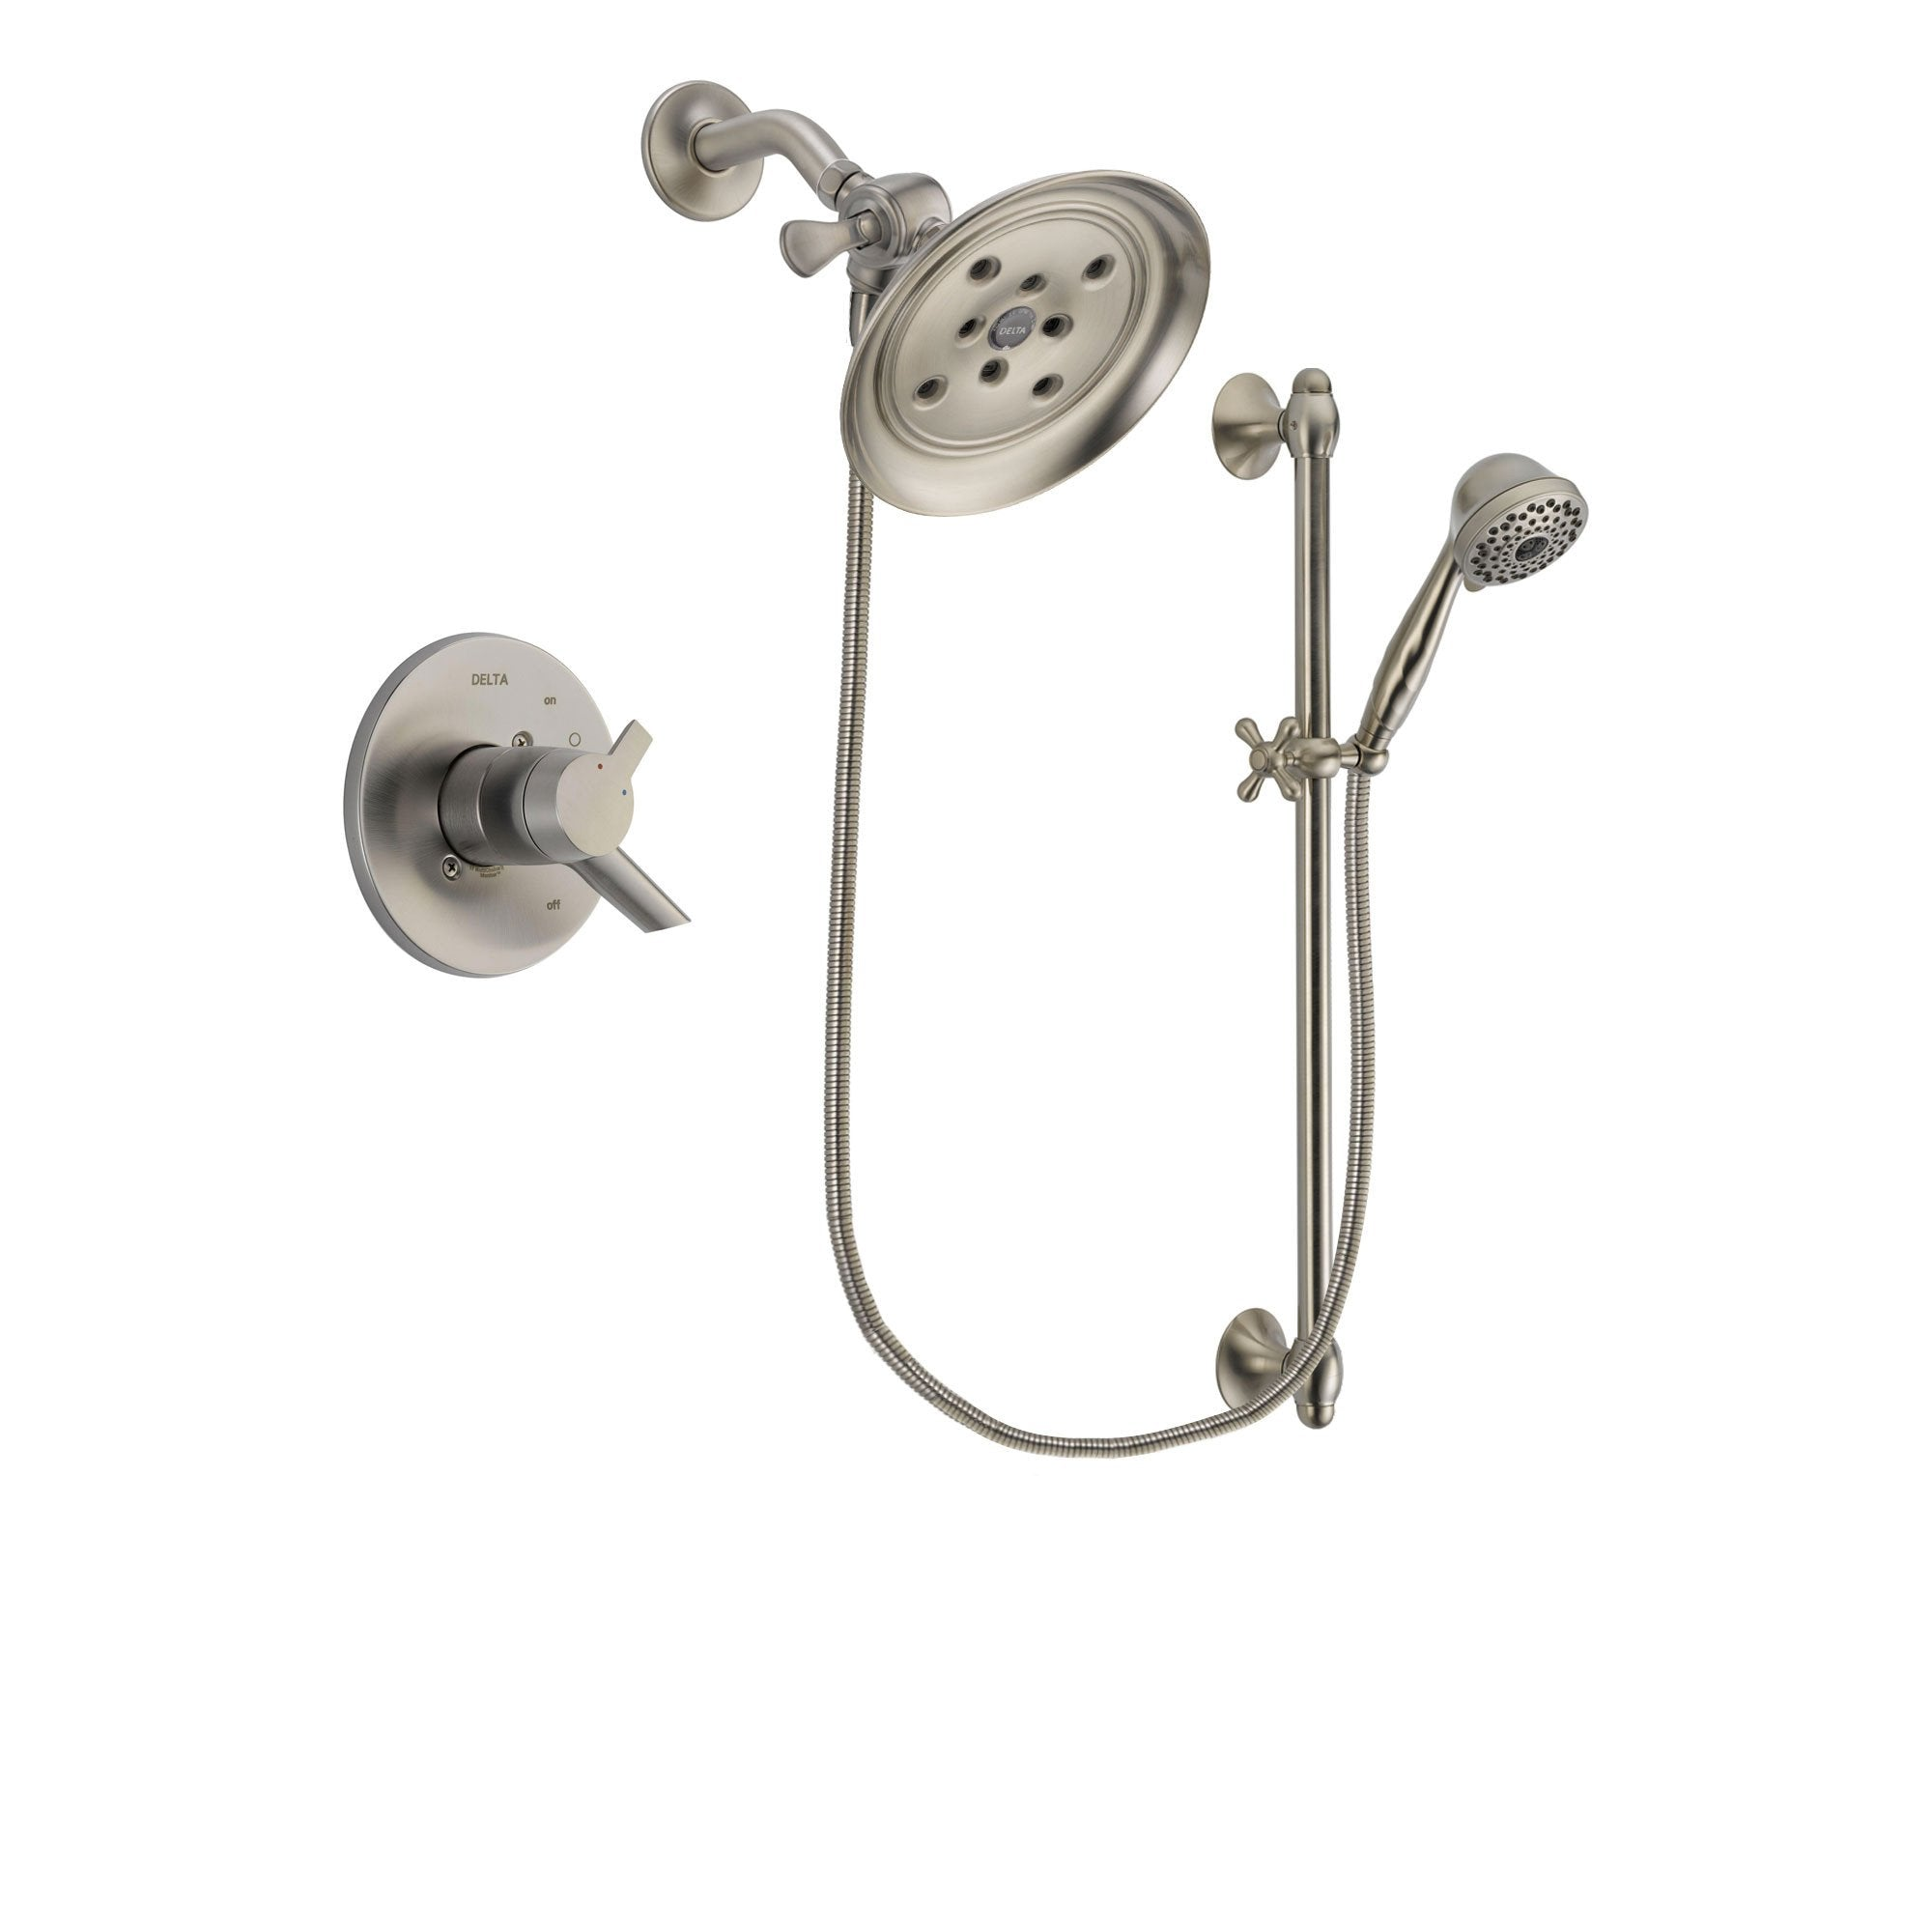 Delta Compel Stainless Steel Finish Shower Faucet System w/ Hand Spray DSP1742V